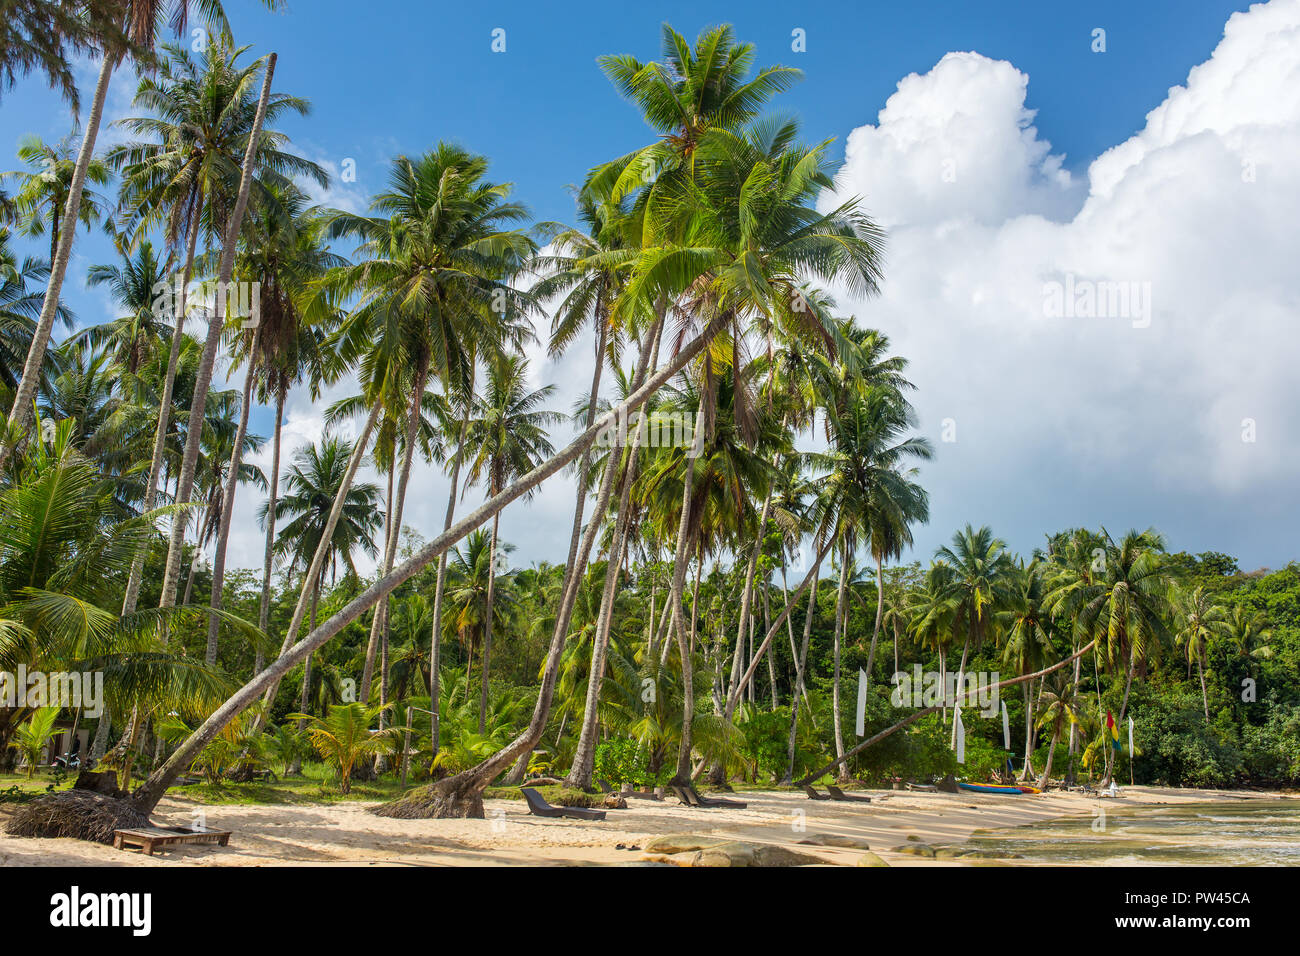 Palm trees on beautiful tropical beach on Koh Kood island in Thailand - Stock Image